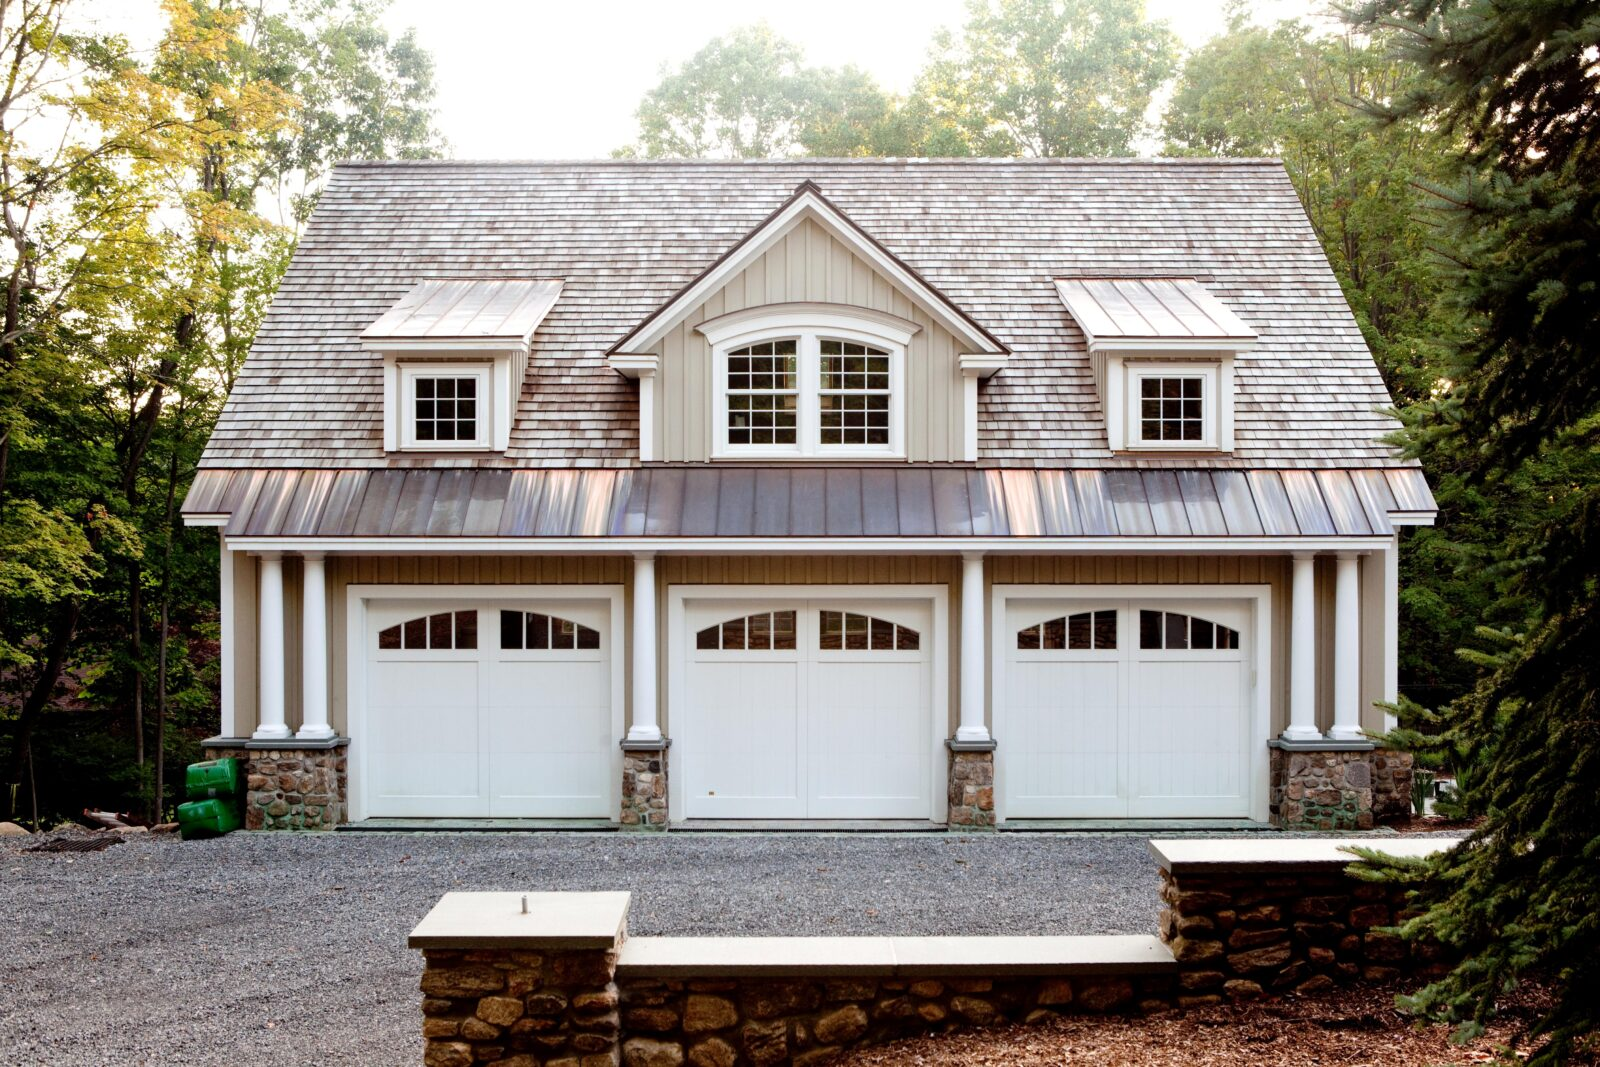 exterior sliding barn doors - Yankee Barn Homes